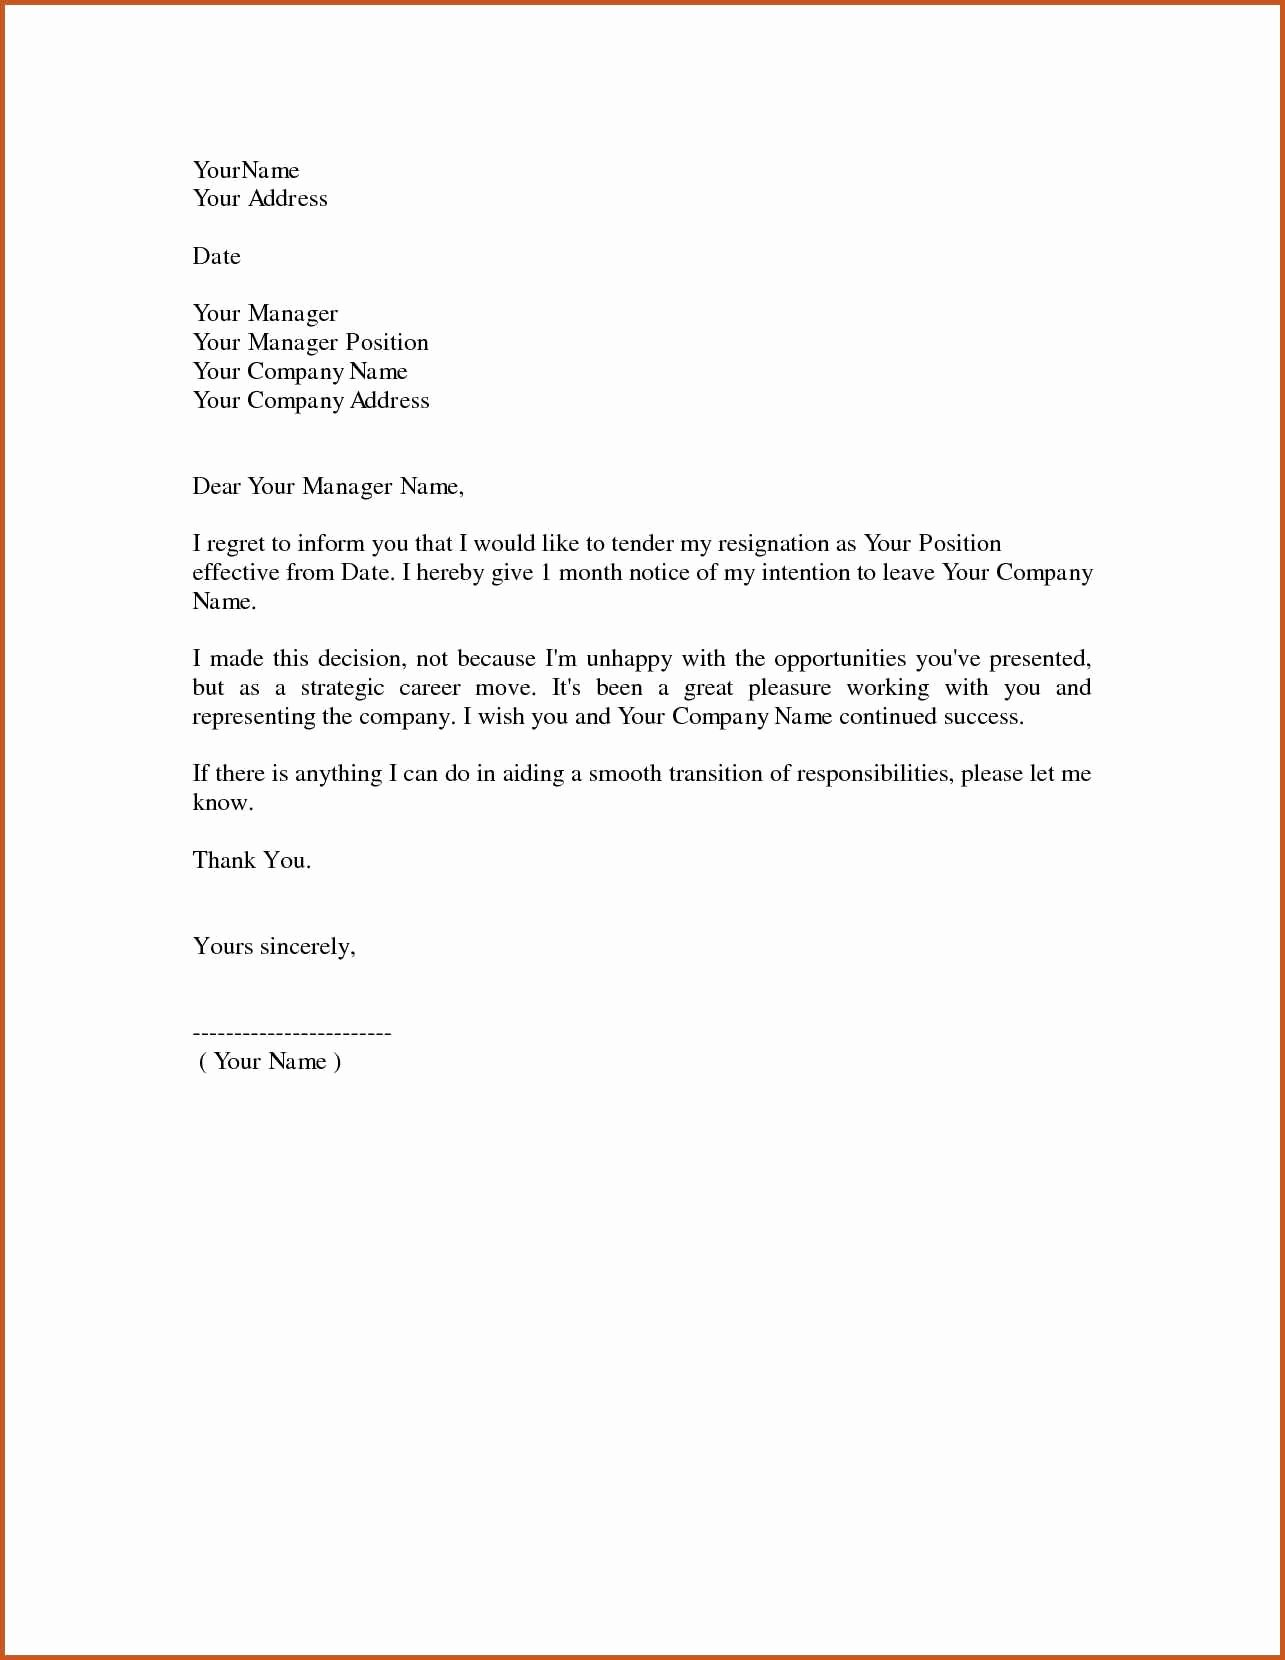 Retirement Resignation Letter to Employer New Retirement Letter to Employer Template Samples